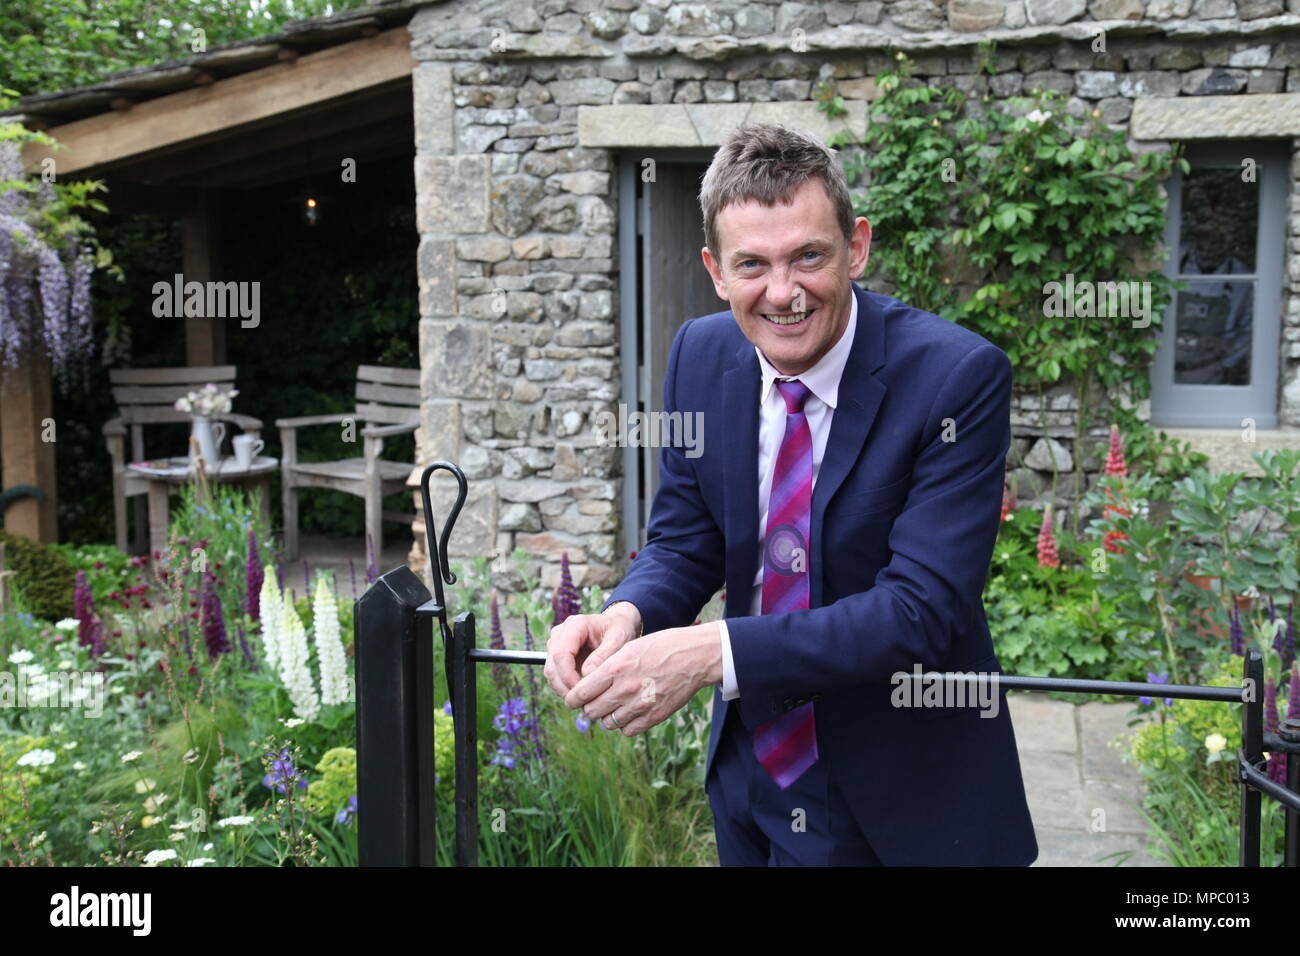 Chelsea, London, UK. 21st May, 2018. Chelsea, London, UK. 21st May 2018. Matthew Wright on the Welcome to Yorkshire garden at Chelsea Flower Show 2018, designed by Mark Gregory for Landformconsultants.co.uk Credit: Jenny Lilly/Alamy Live News - Stock Image